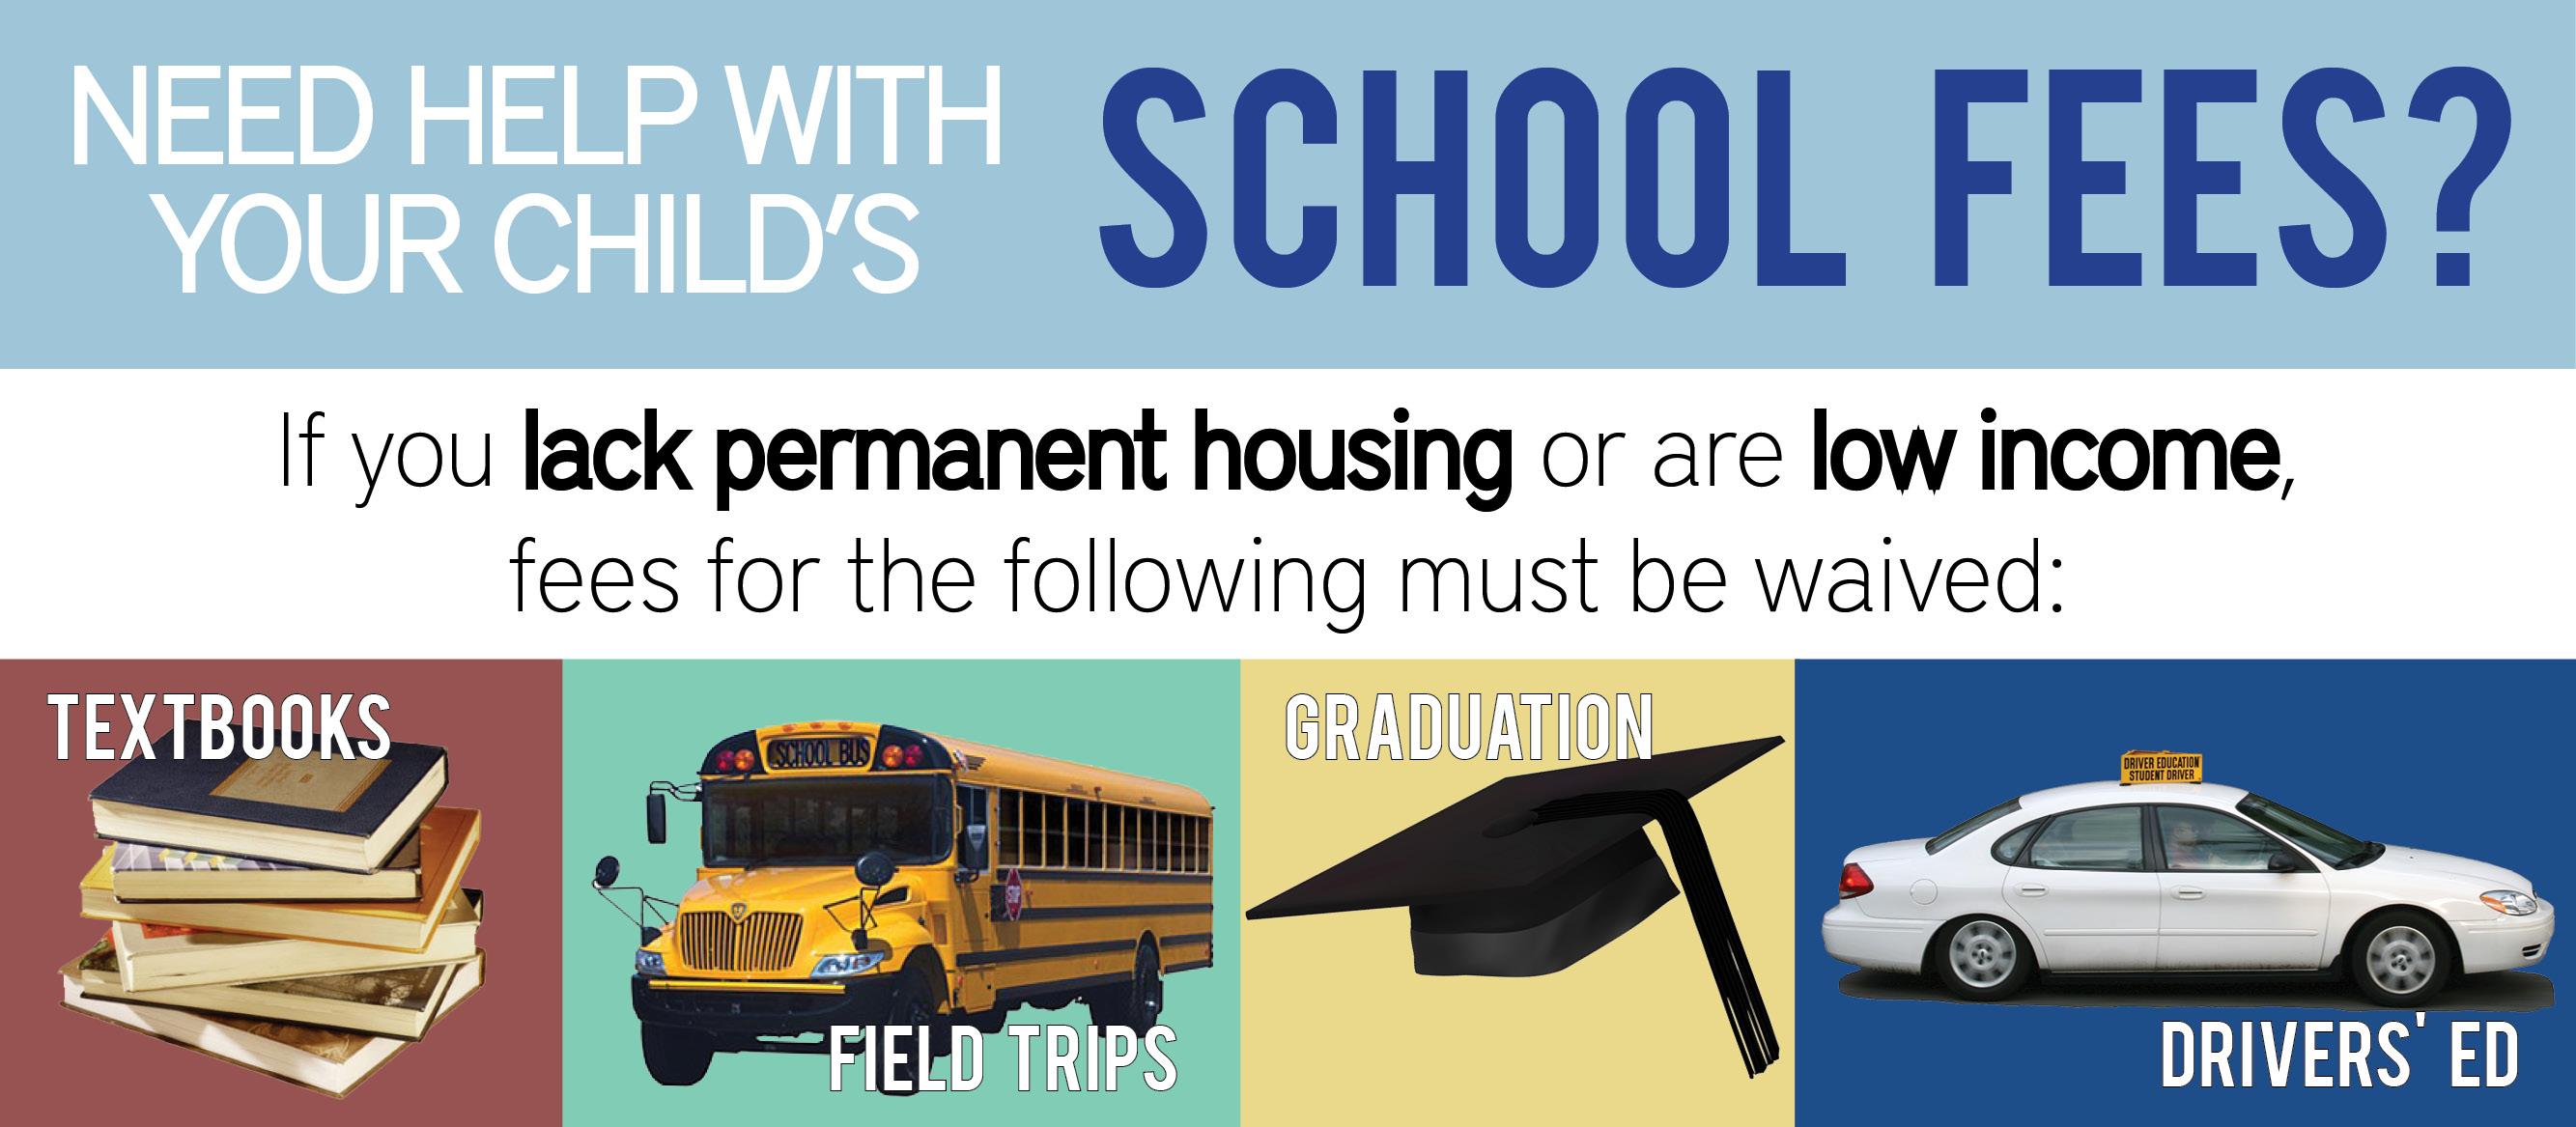 School fee waivers for homeless and low-income students